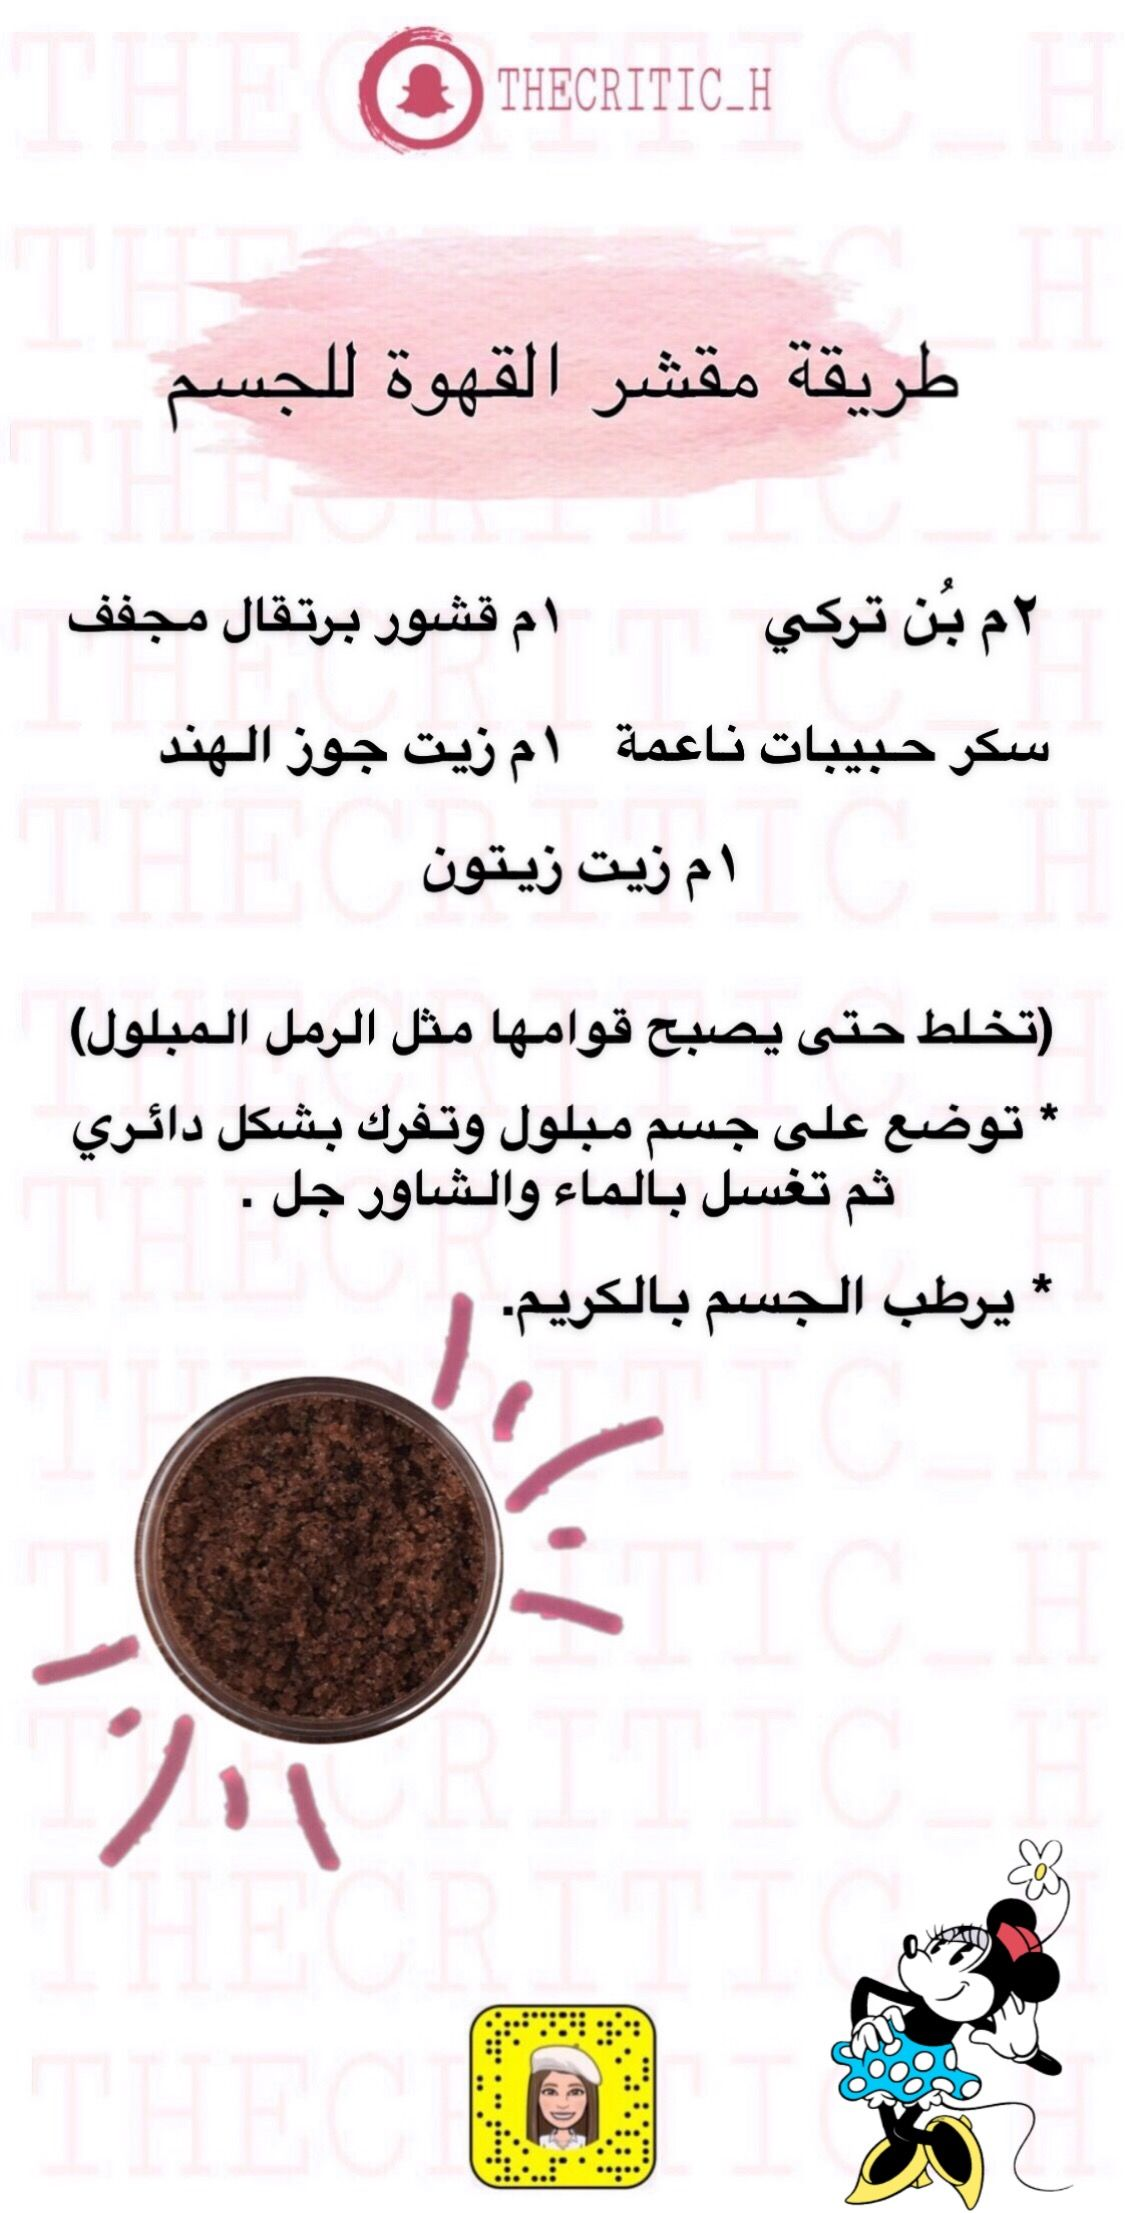 Pin By كوكتيل On عناية بالبشرة In 2021 Beauty Skin Care Routine Beauty Care Health Skin Care